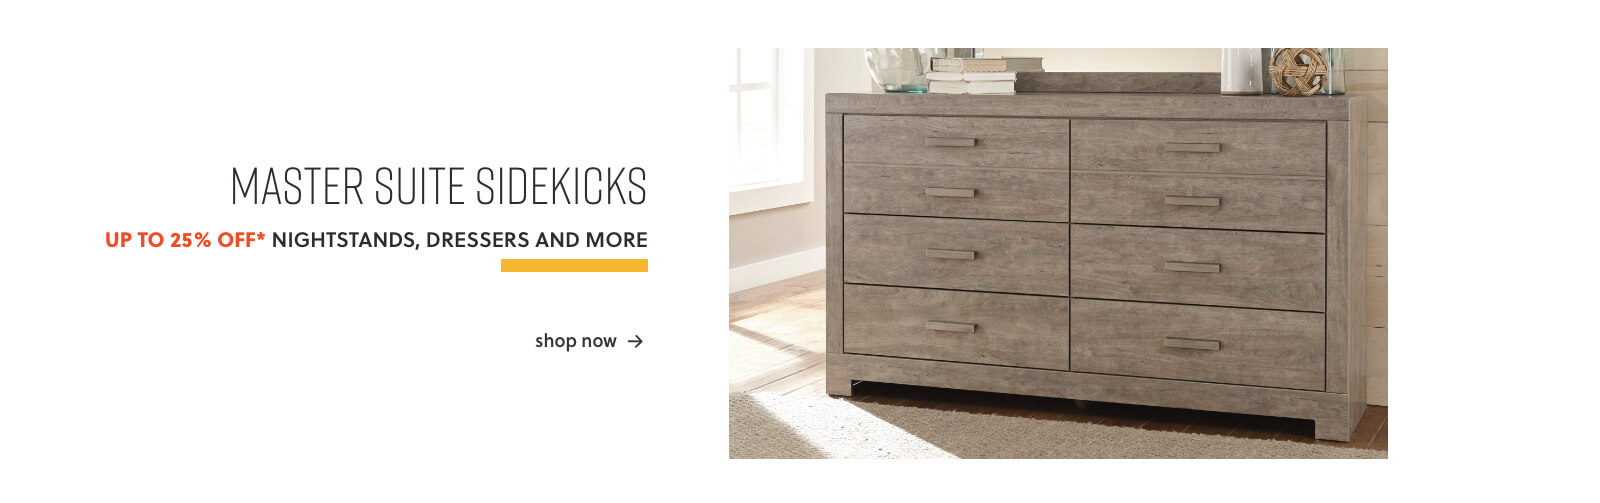 Nightstands, Dressers, and More